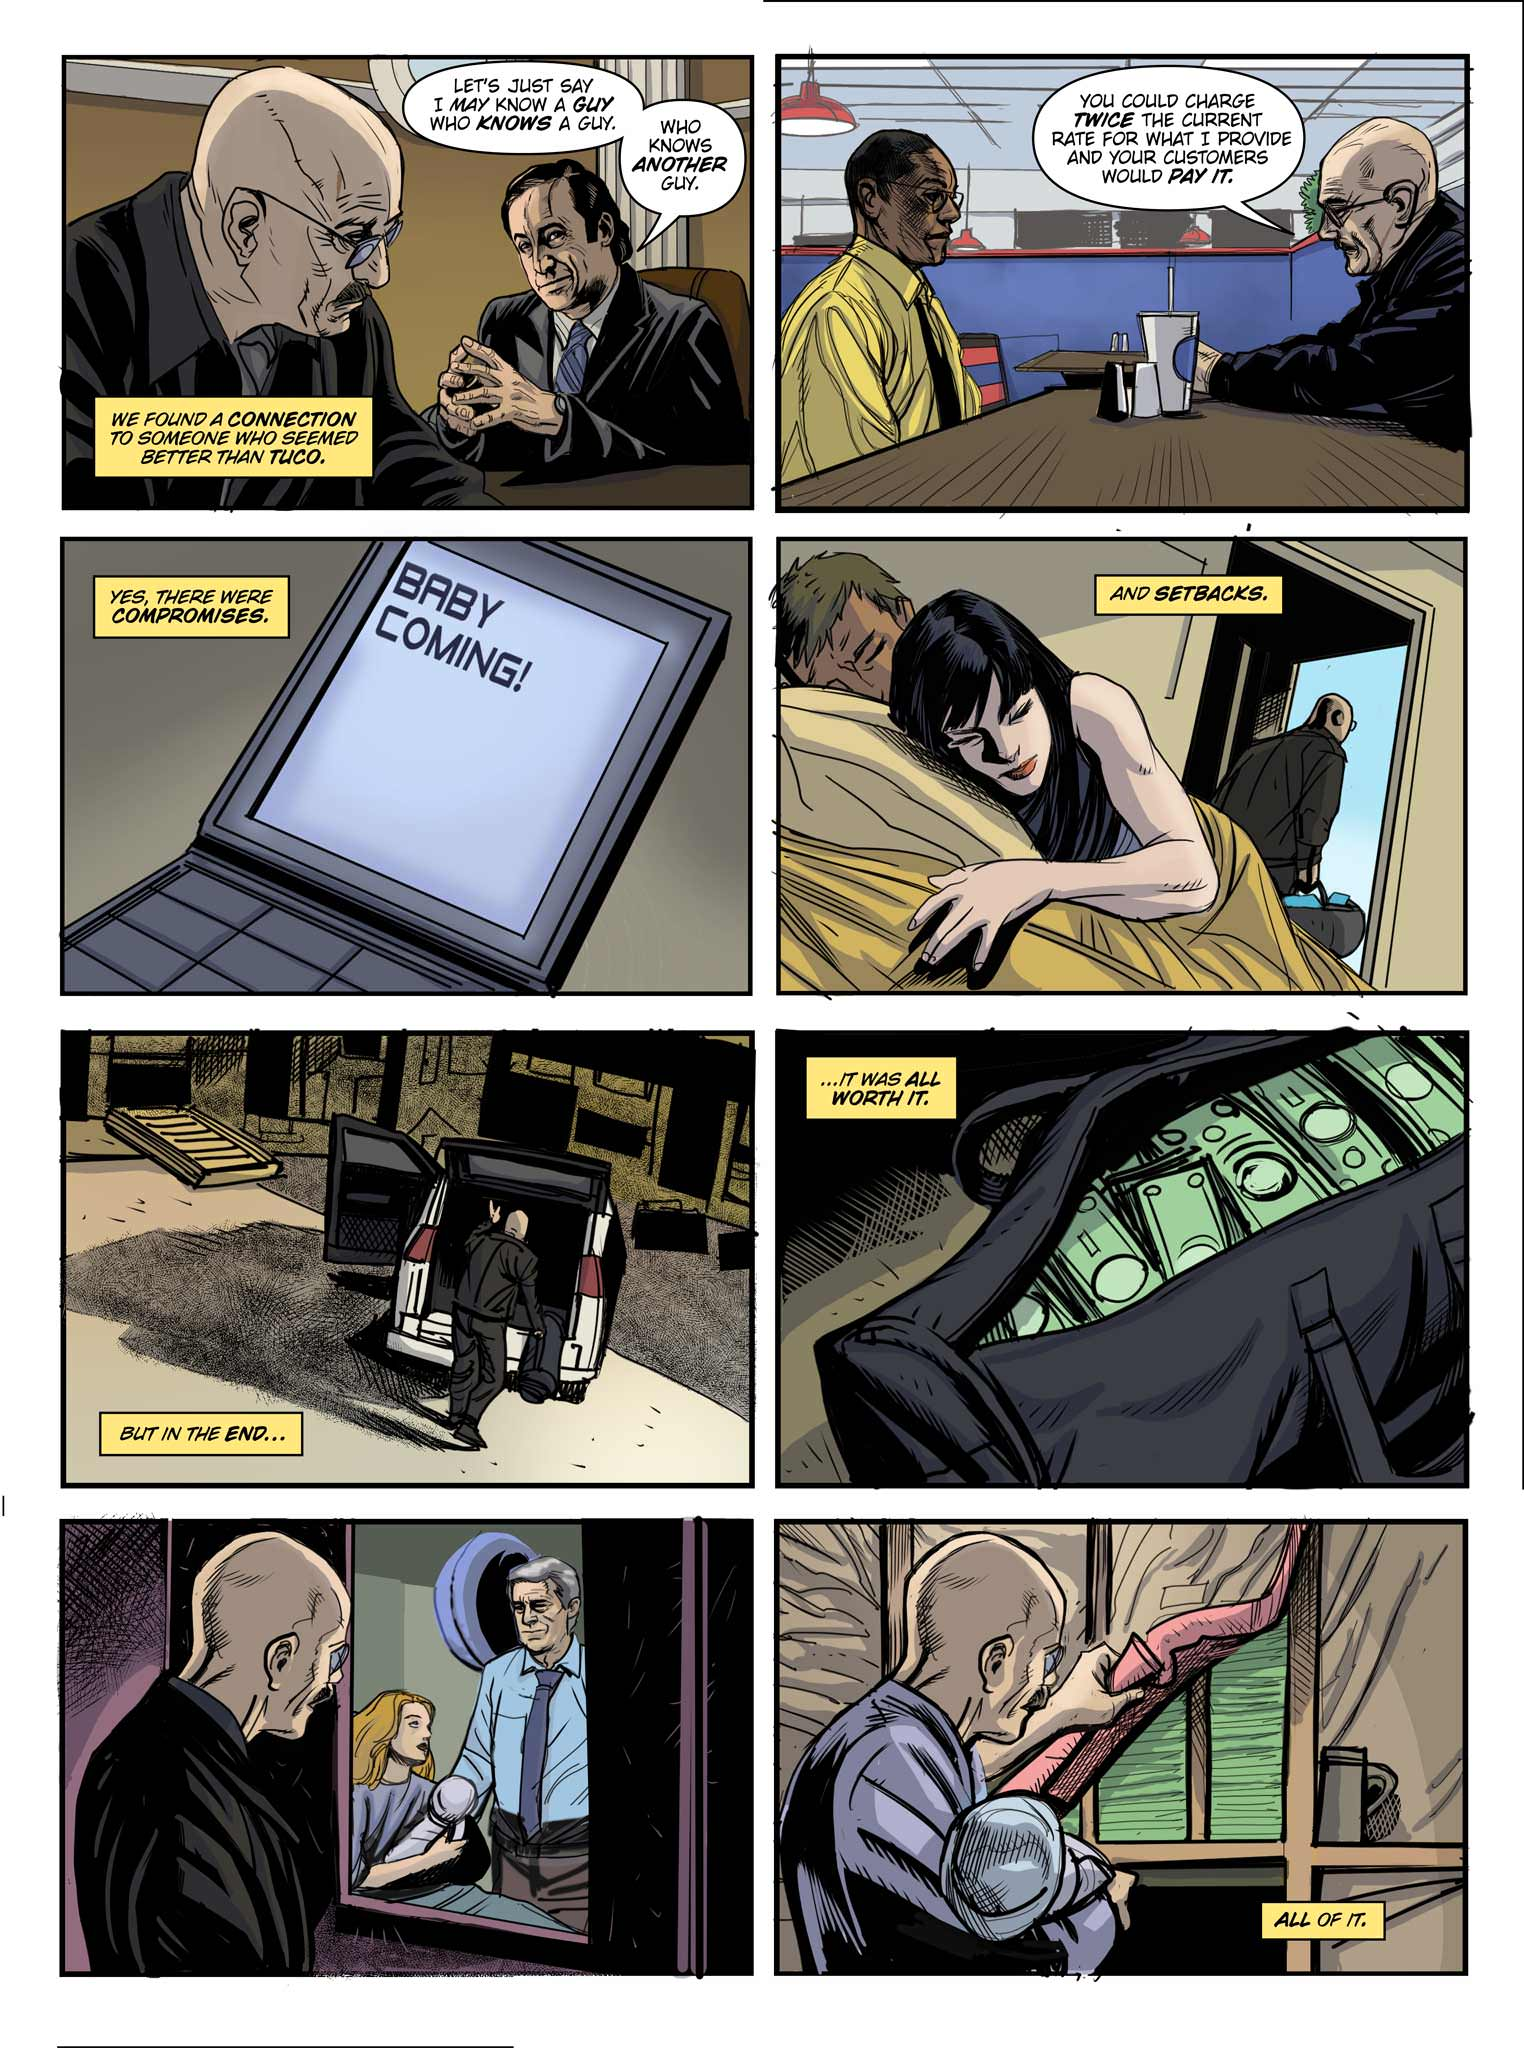 Read online Breaking Bad: All Bad Things comic -  Issue # Full - 8